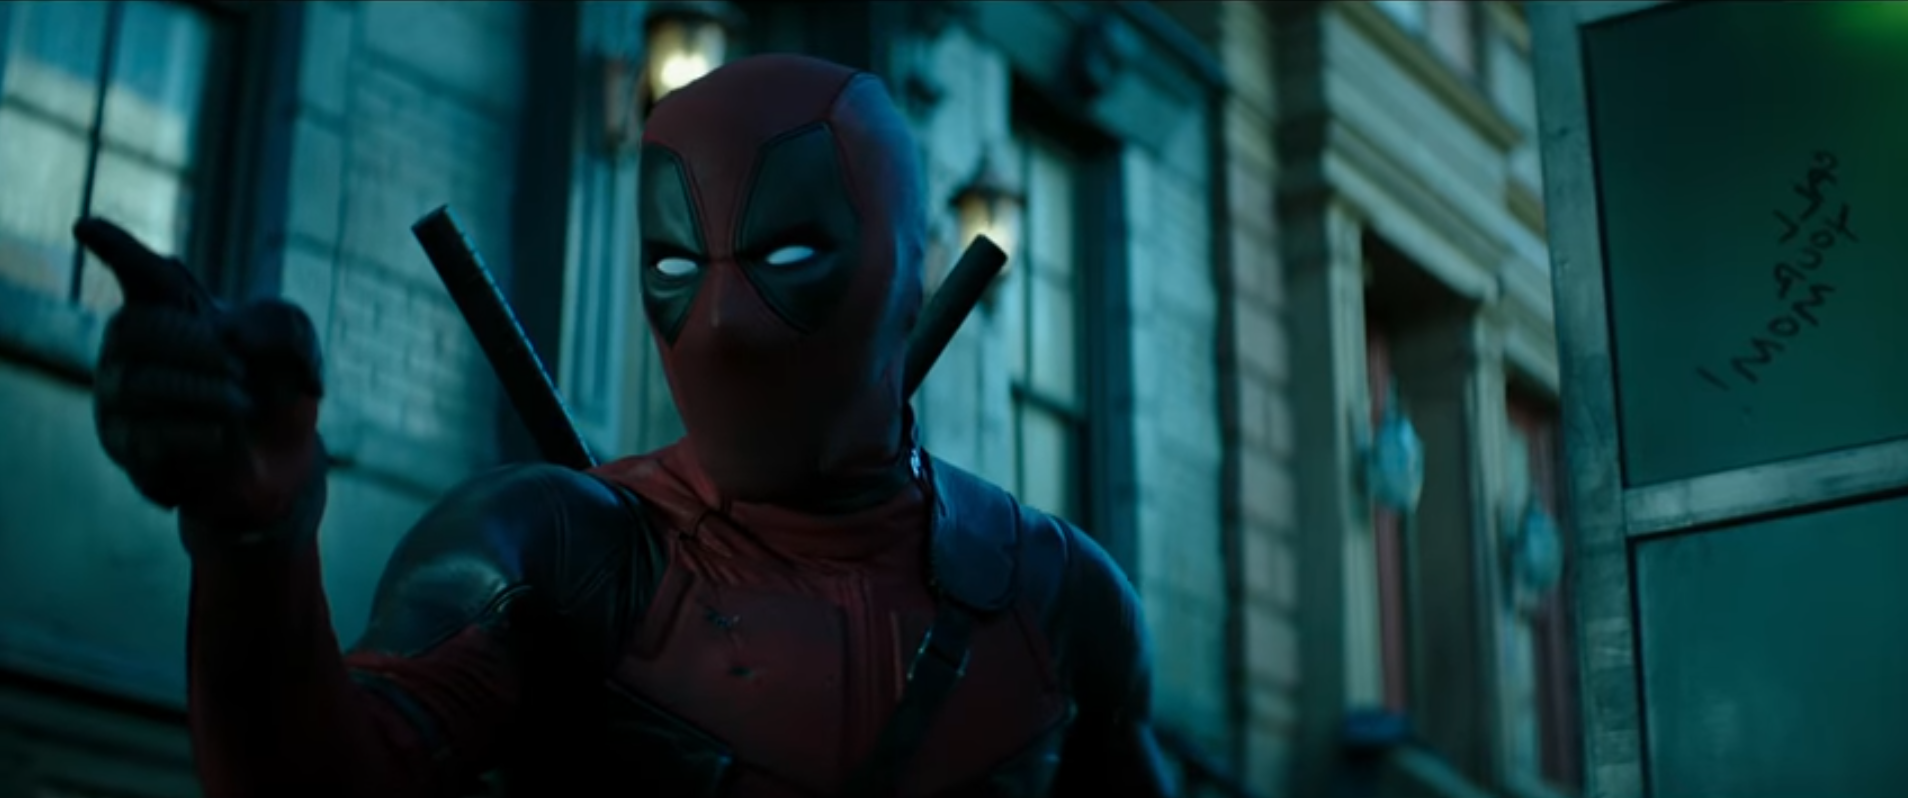 WATCH: The Final Trailer for Deadpool 2!